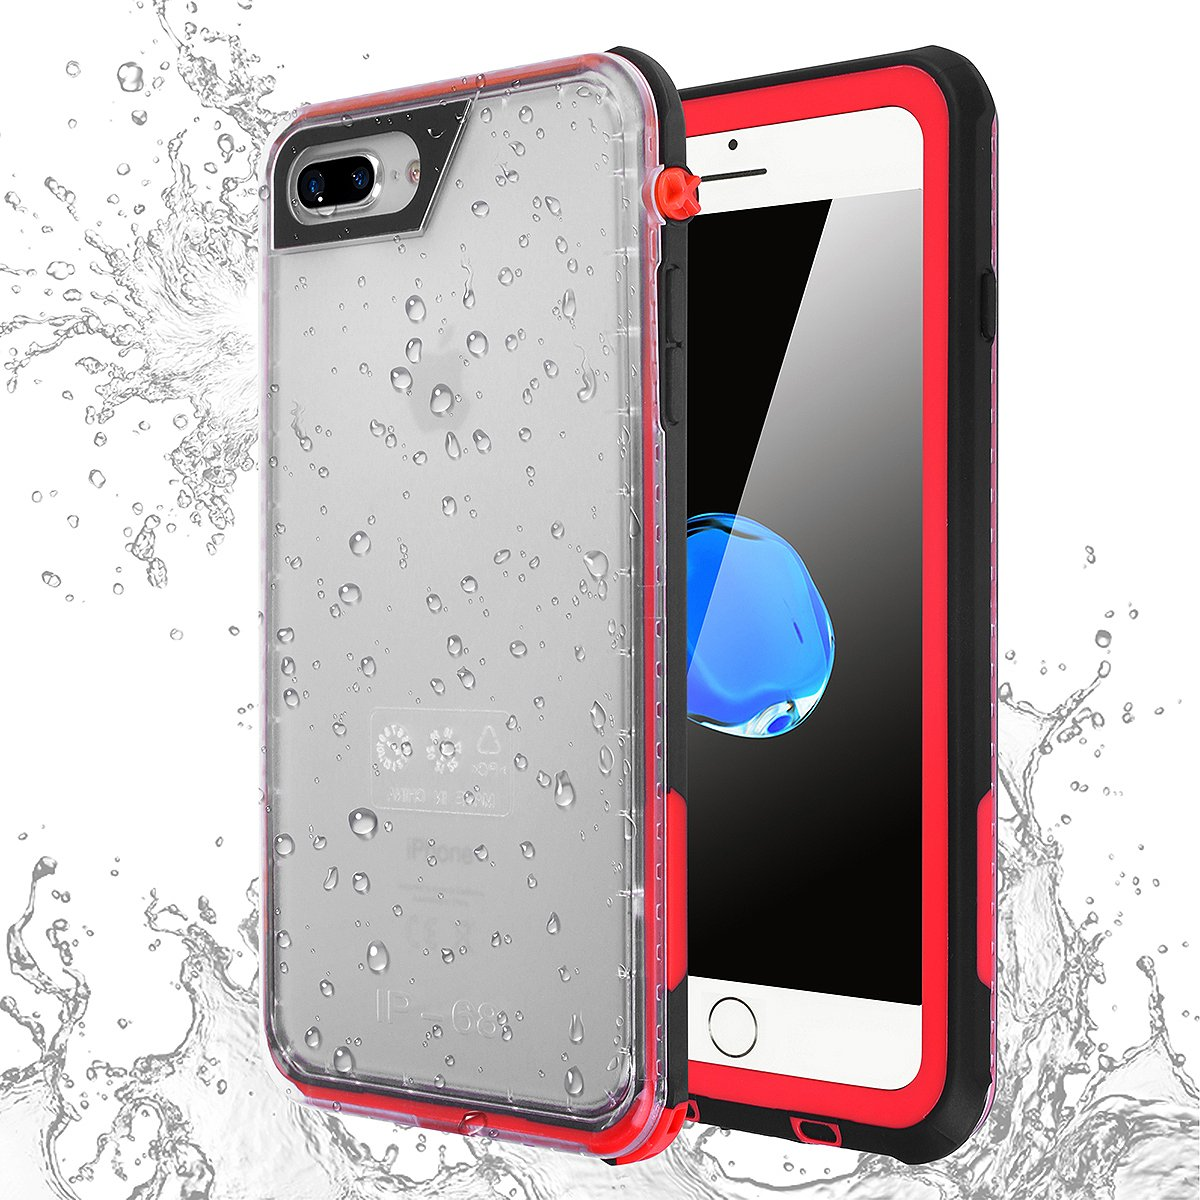 iPhone 8 Plus Waterproof Case, AICase IP68 Ultra Thin Full Sealed Shock/Snow/Dirty Proof Full-body with Built-in Screen Protector for Apple 5.5'' iPhone 8 Plus/7 Plus/6 Plus/6s Plus (Red)